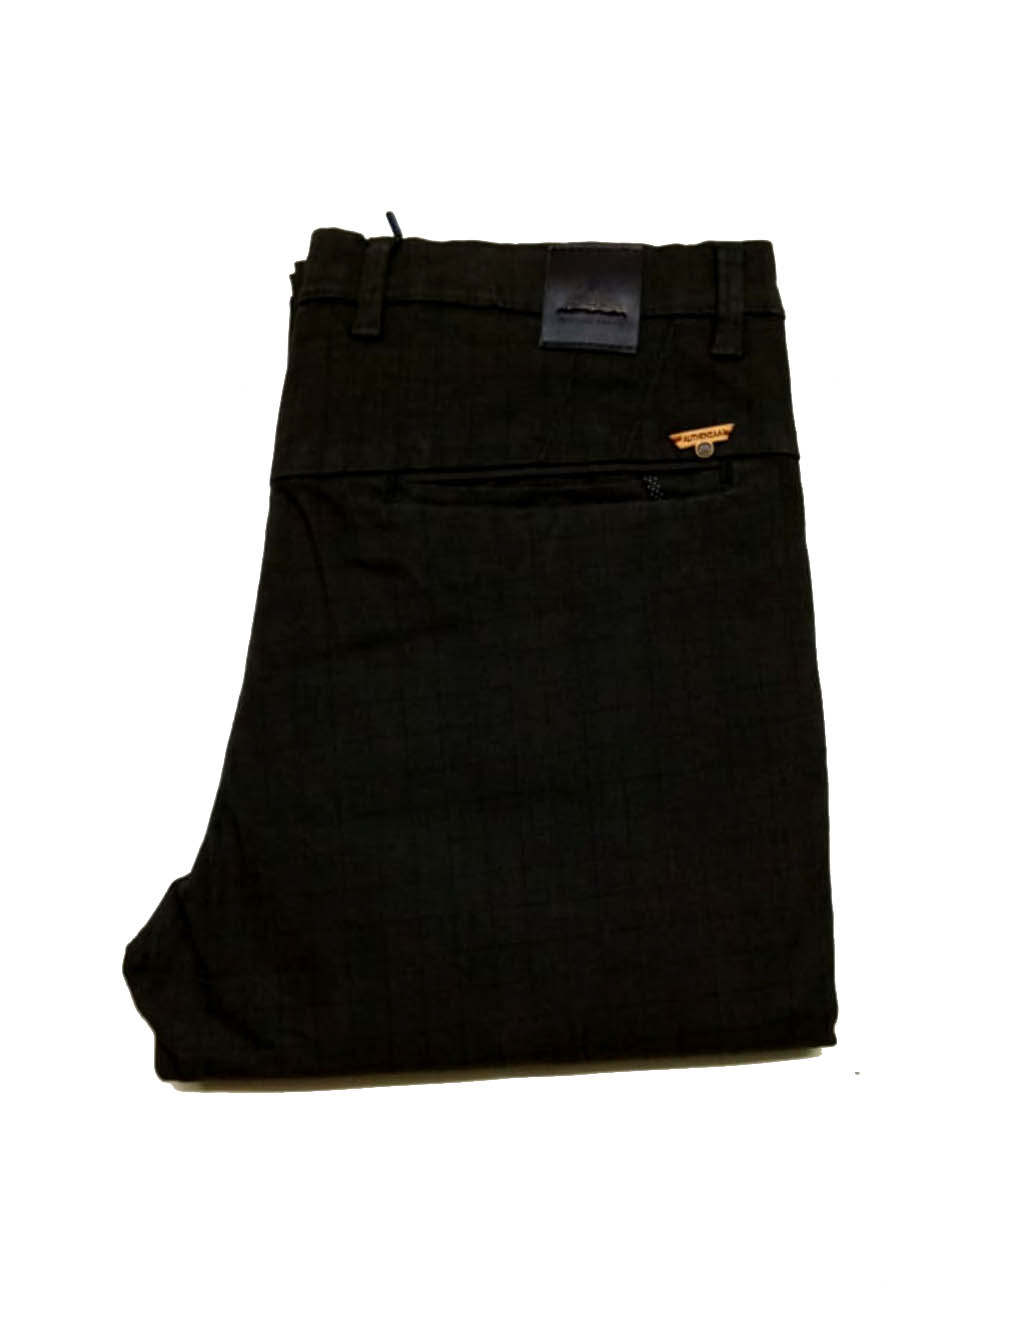 UTD D TELEGRAM-COFFEE MEN'S CASUAL TROUSER